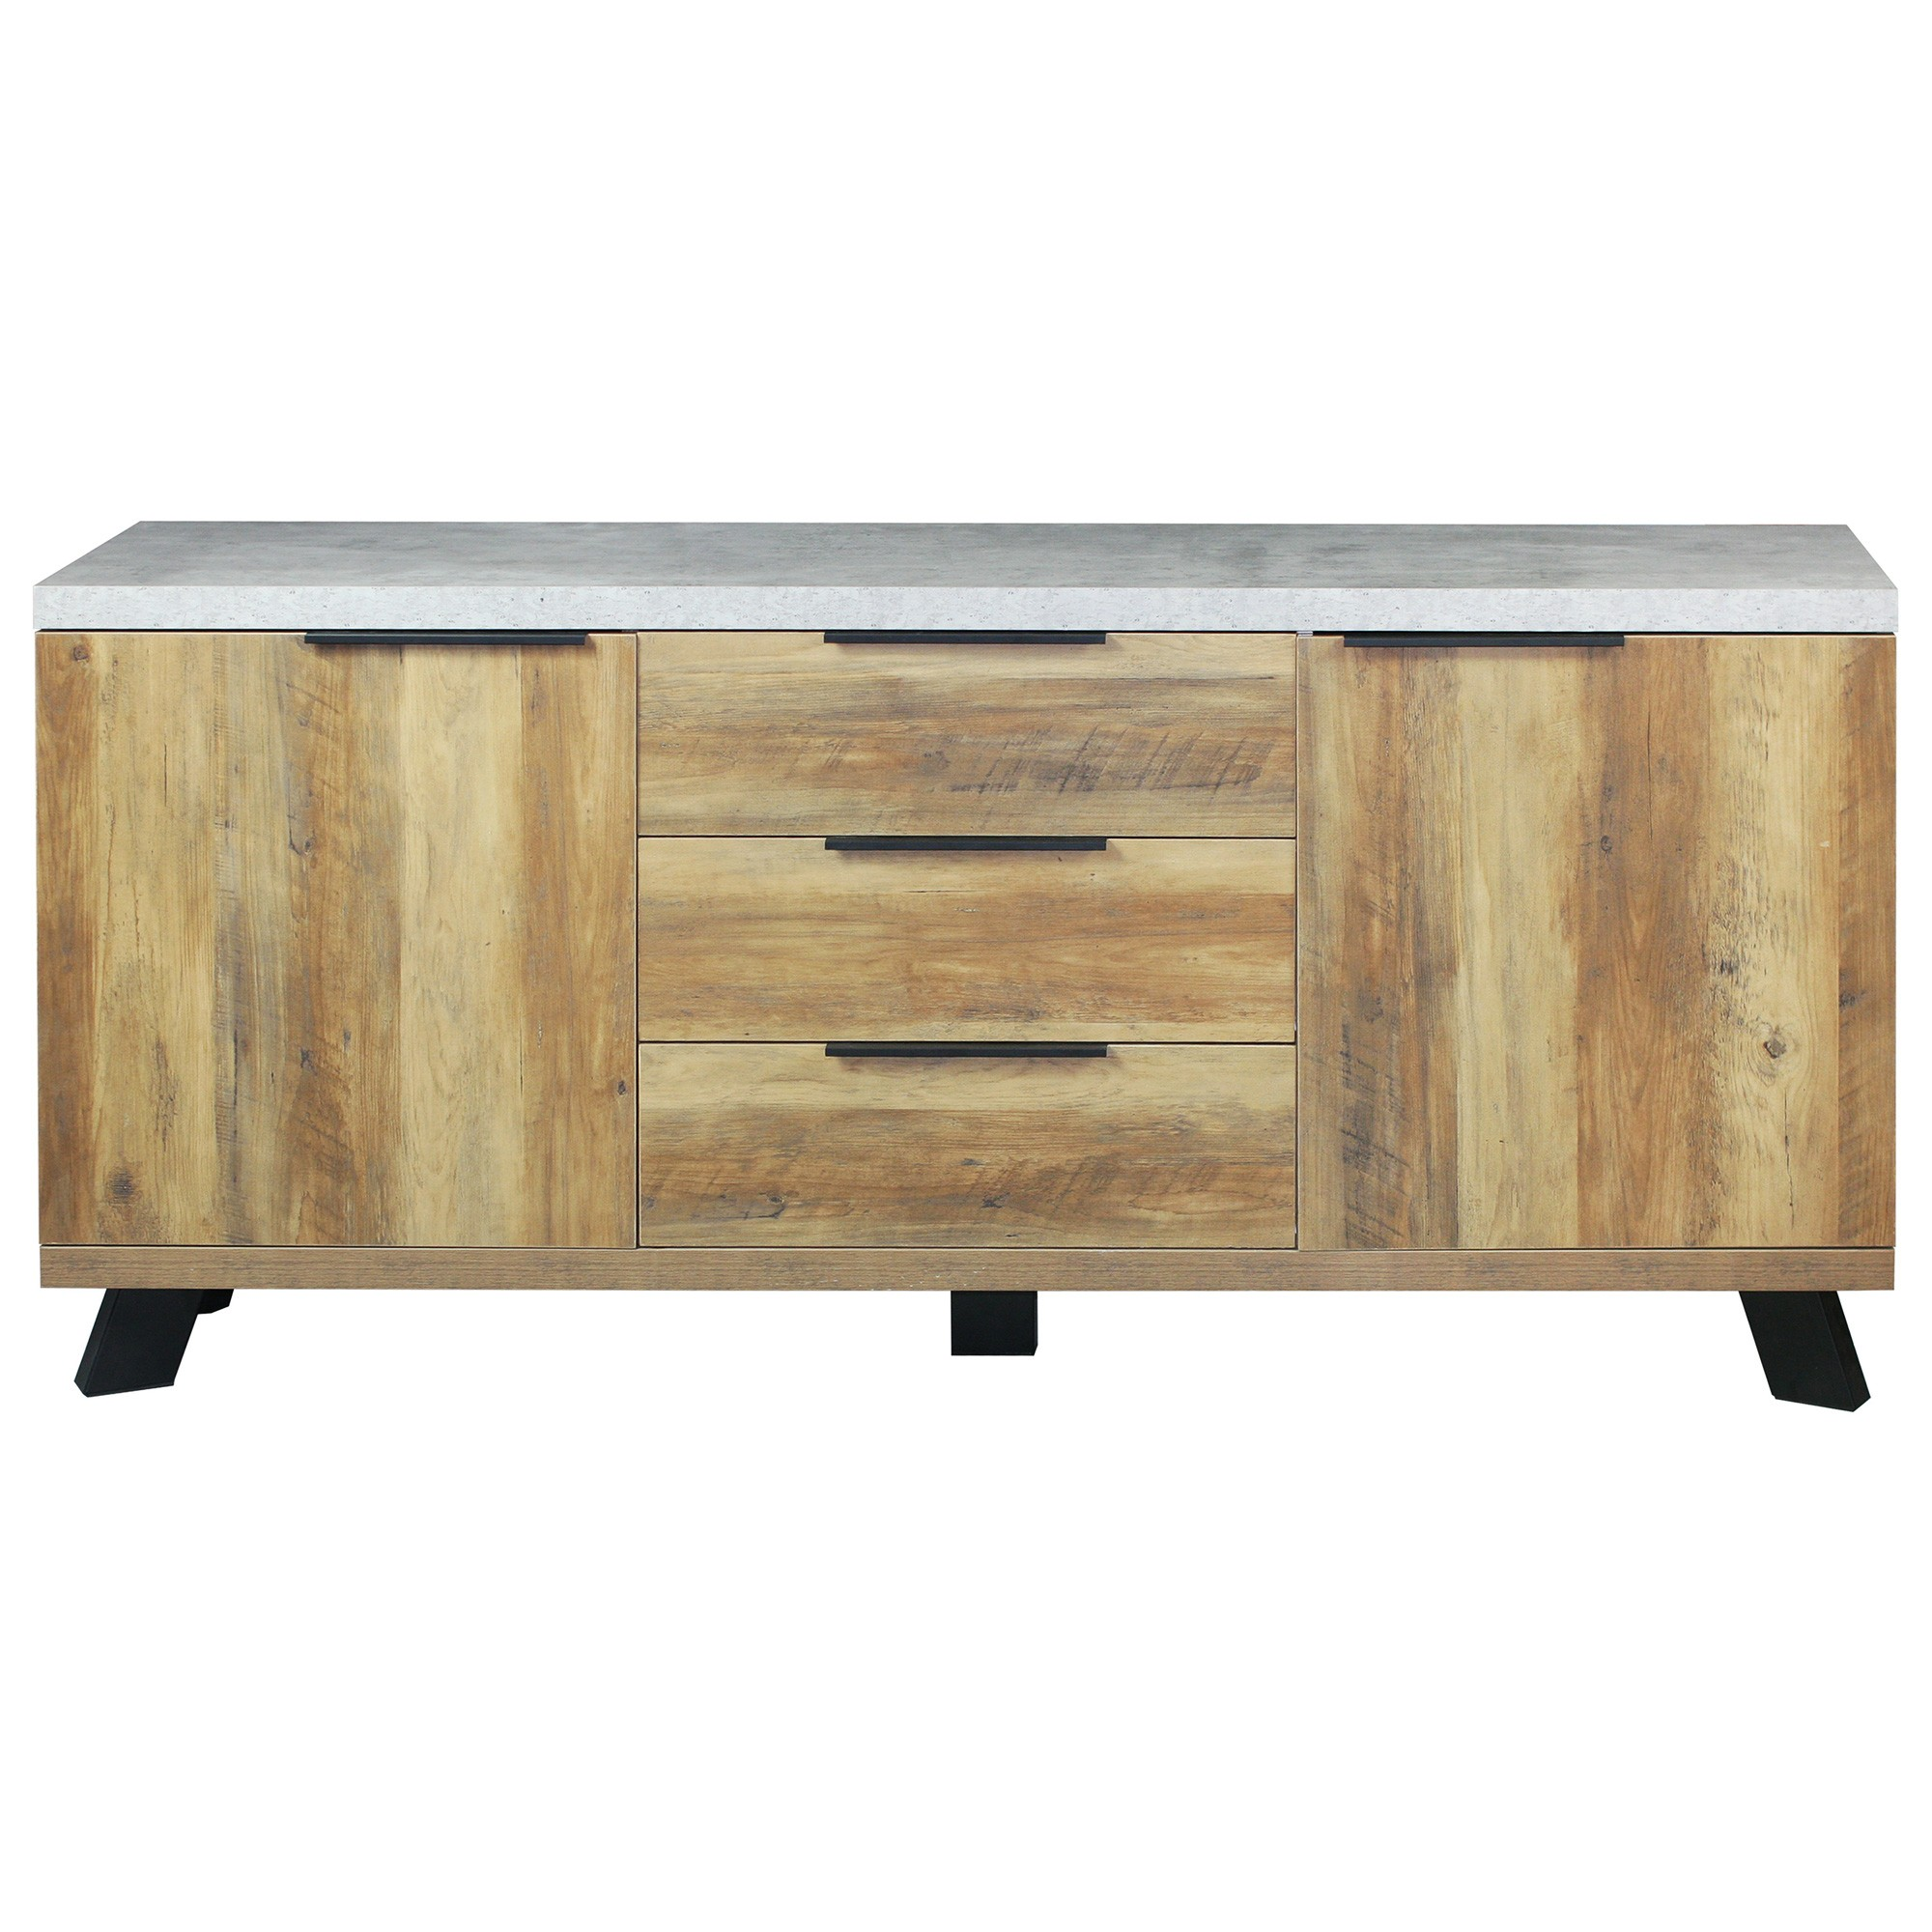 Atlanta 2 Door 3 Drawer SideBoard, 170cm, Concrete Grey / Natural